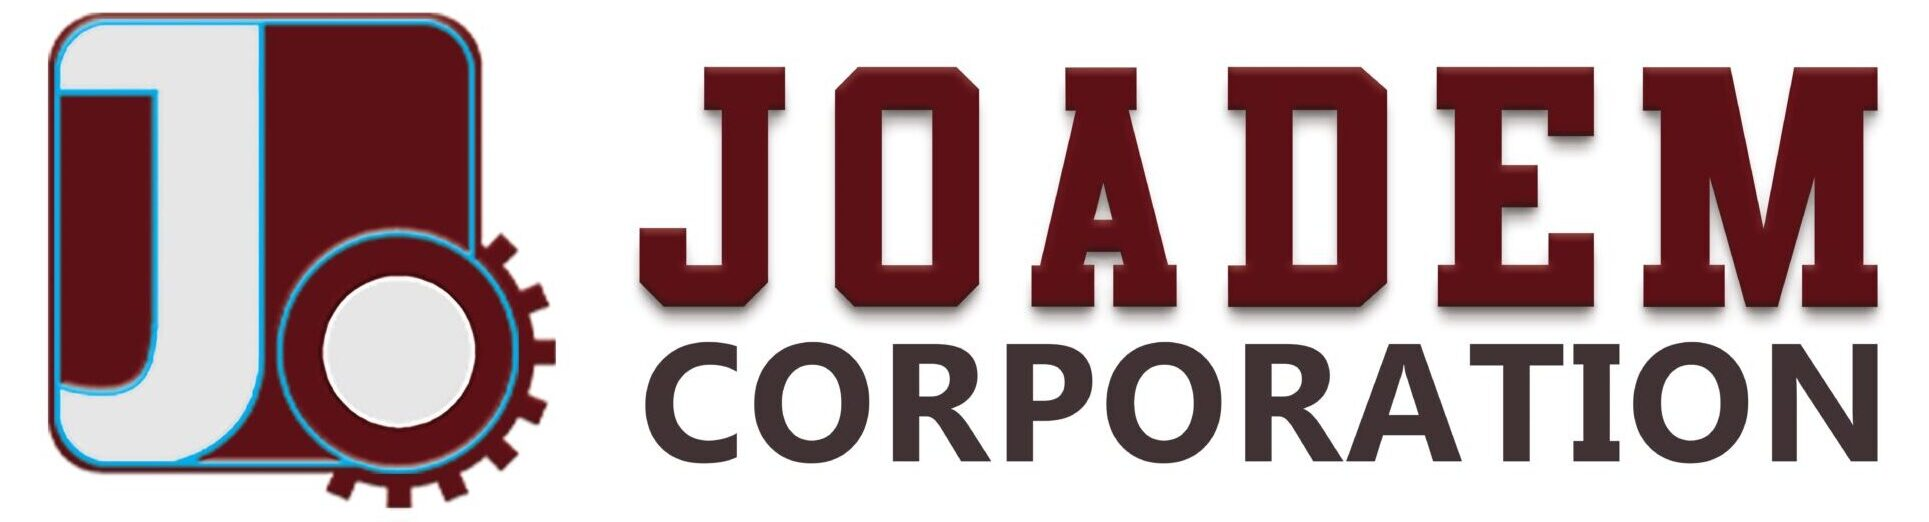 JOADEM Corporation